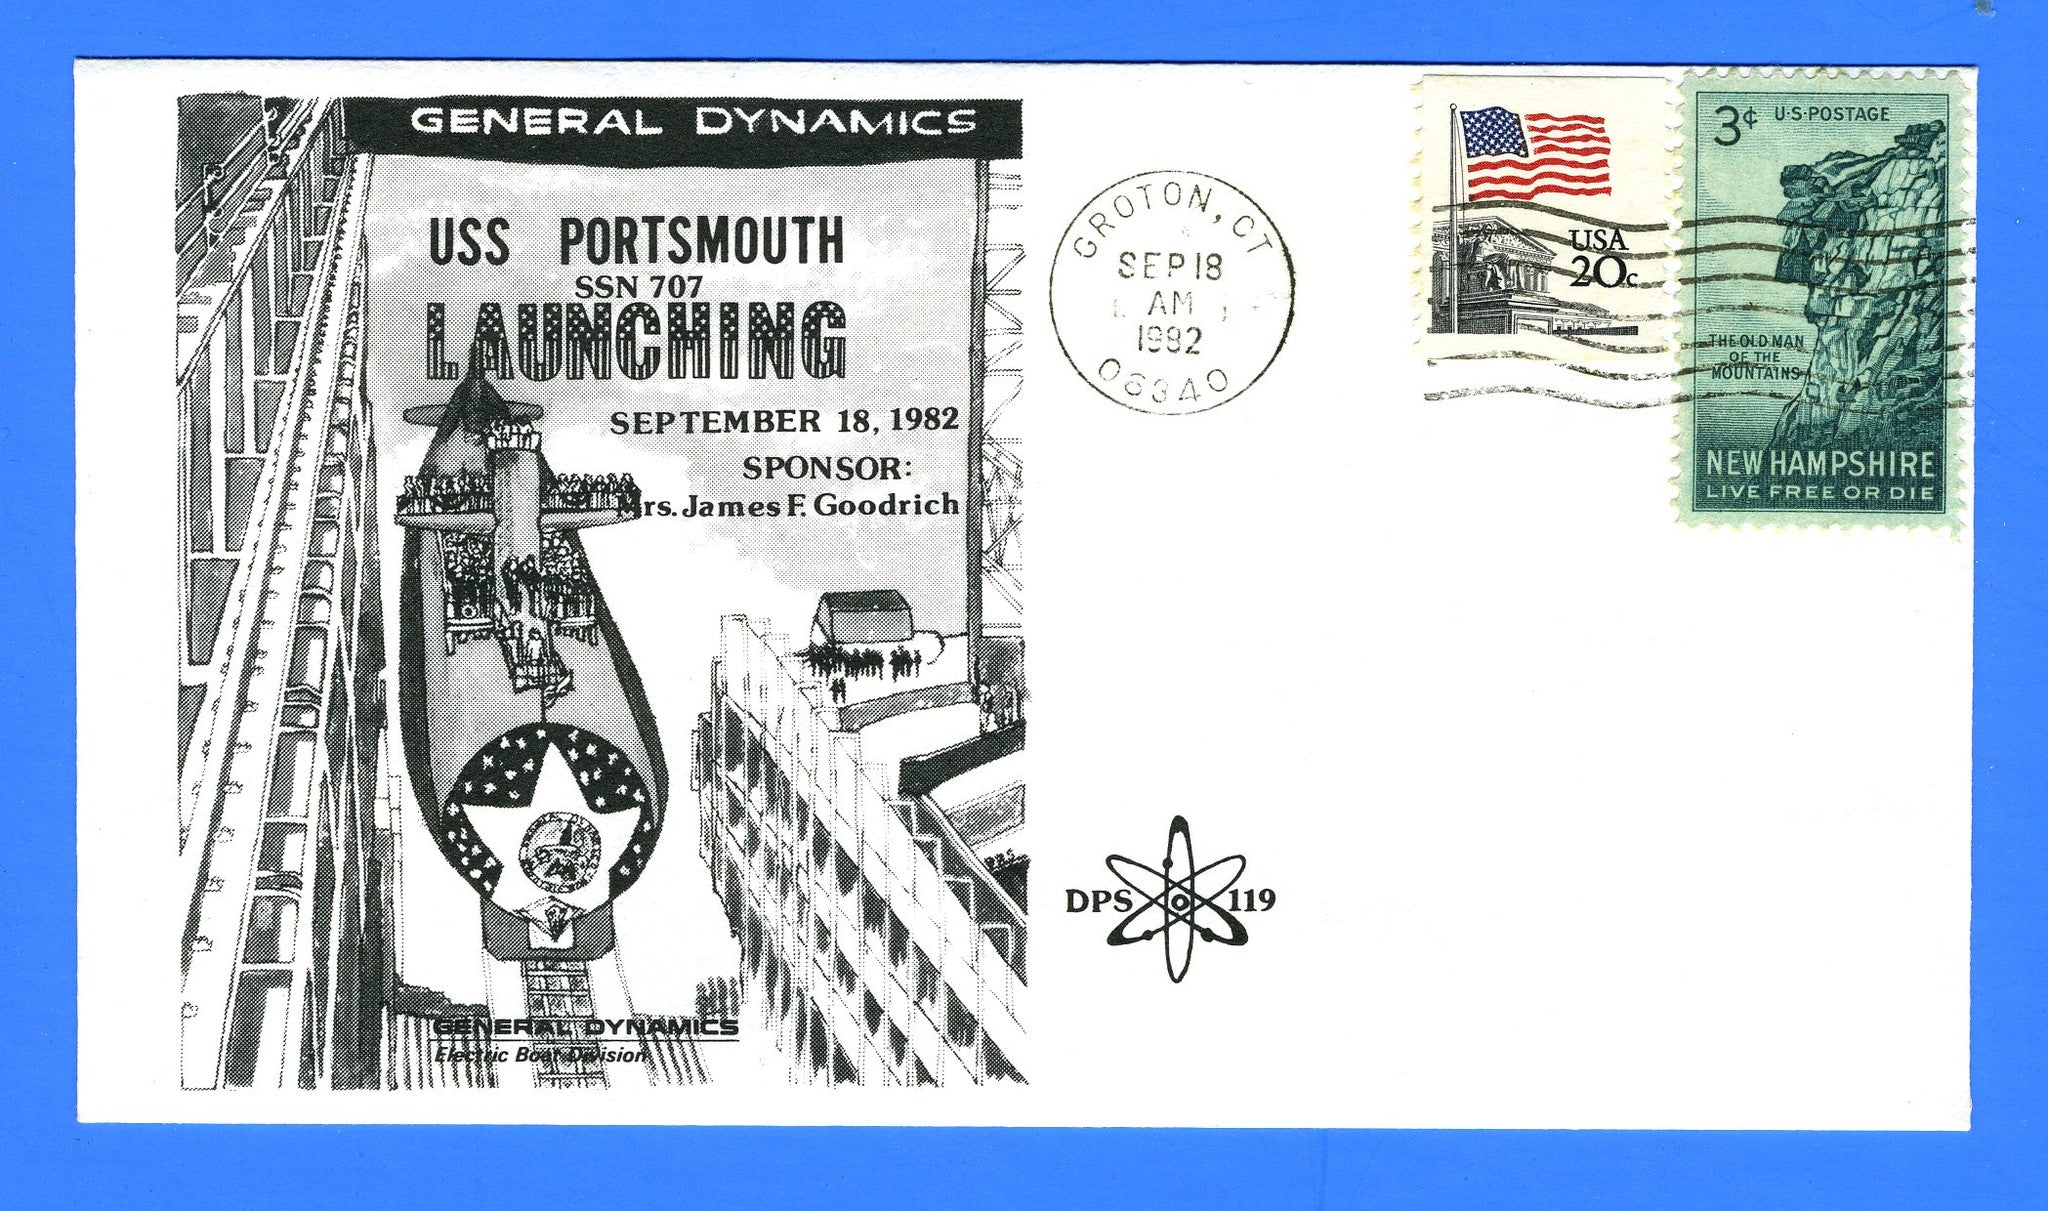 USS Portsmouth SSN-707 Launching September 18, 1982 - Cachet by DPS No. 119 (Dynamic Philatelic Society)